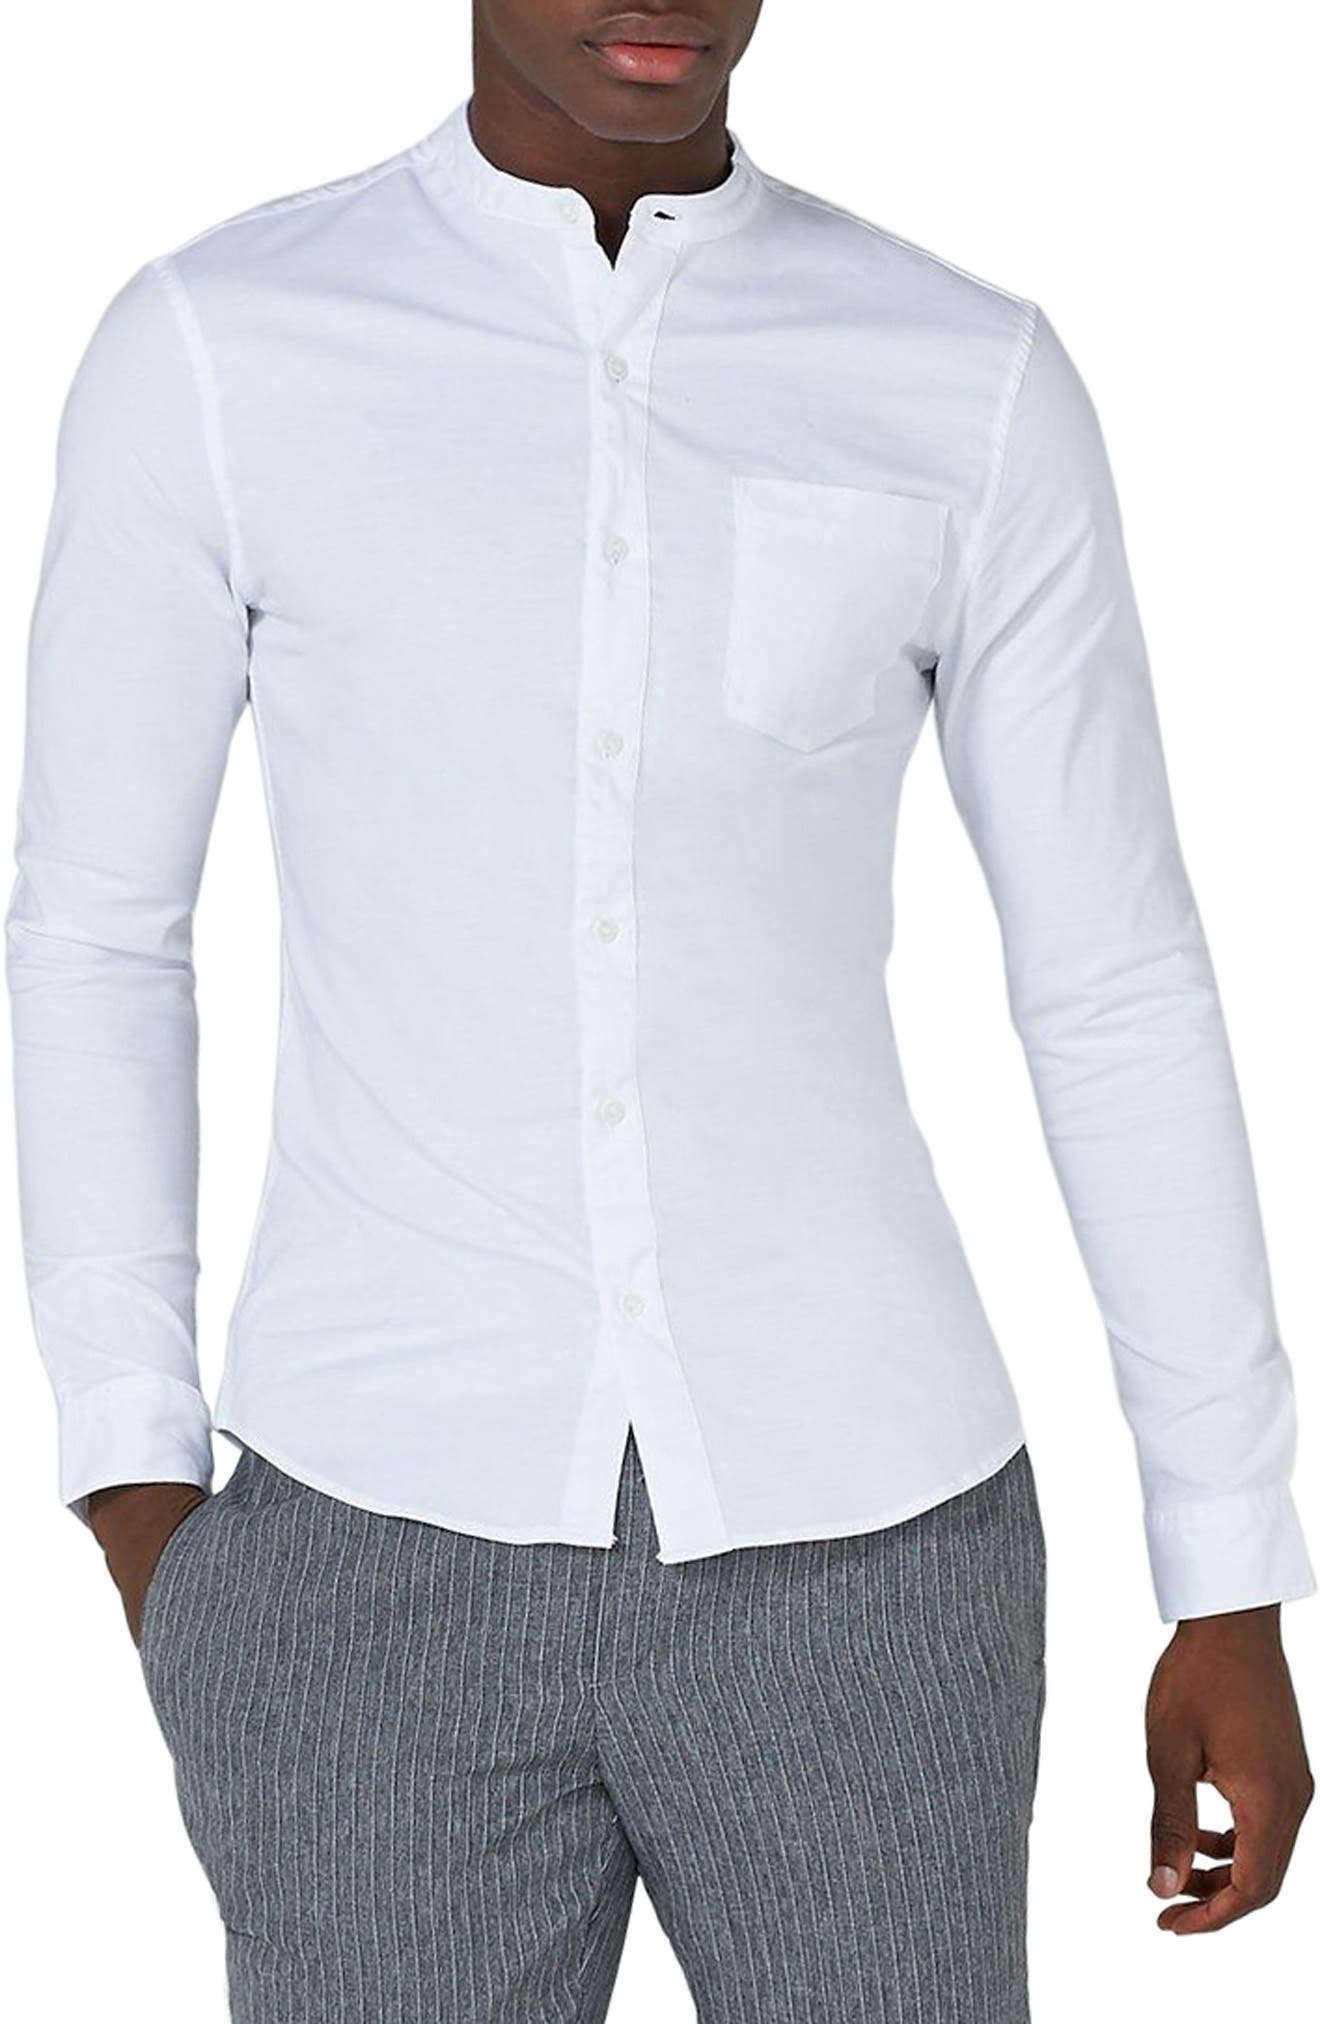 TOPMAN, Muscle Fit Band Collar Shirt, Main thumbnail 1, color, WHITE